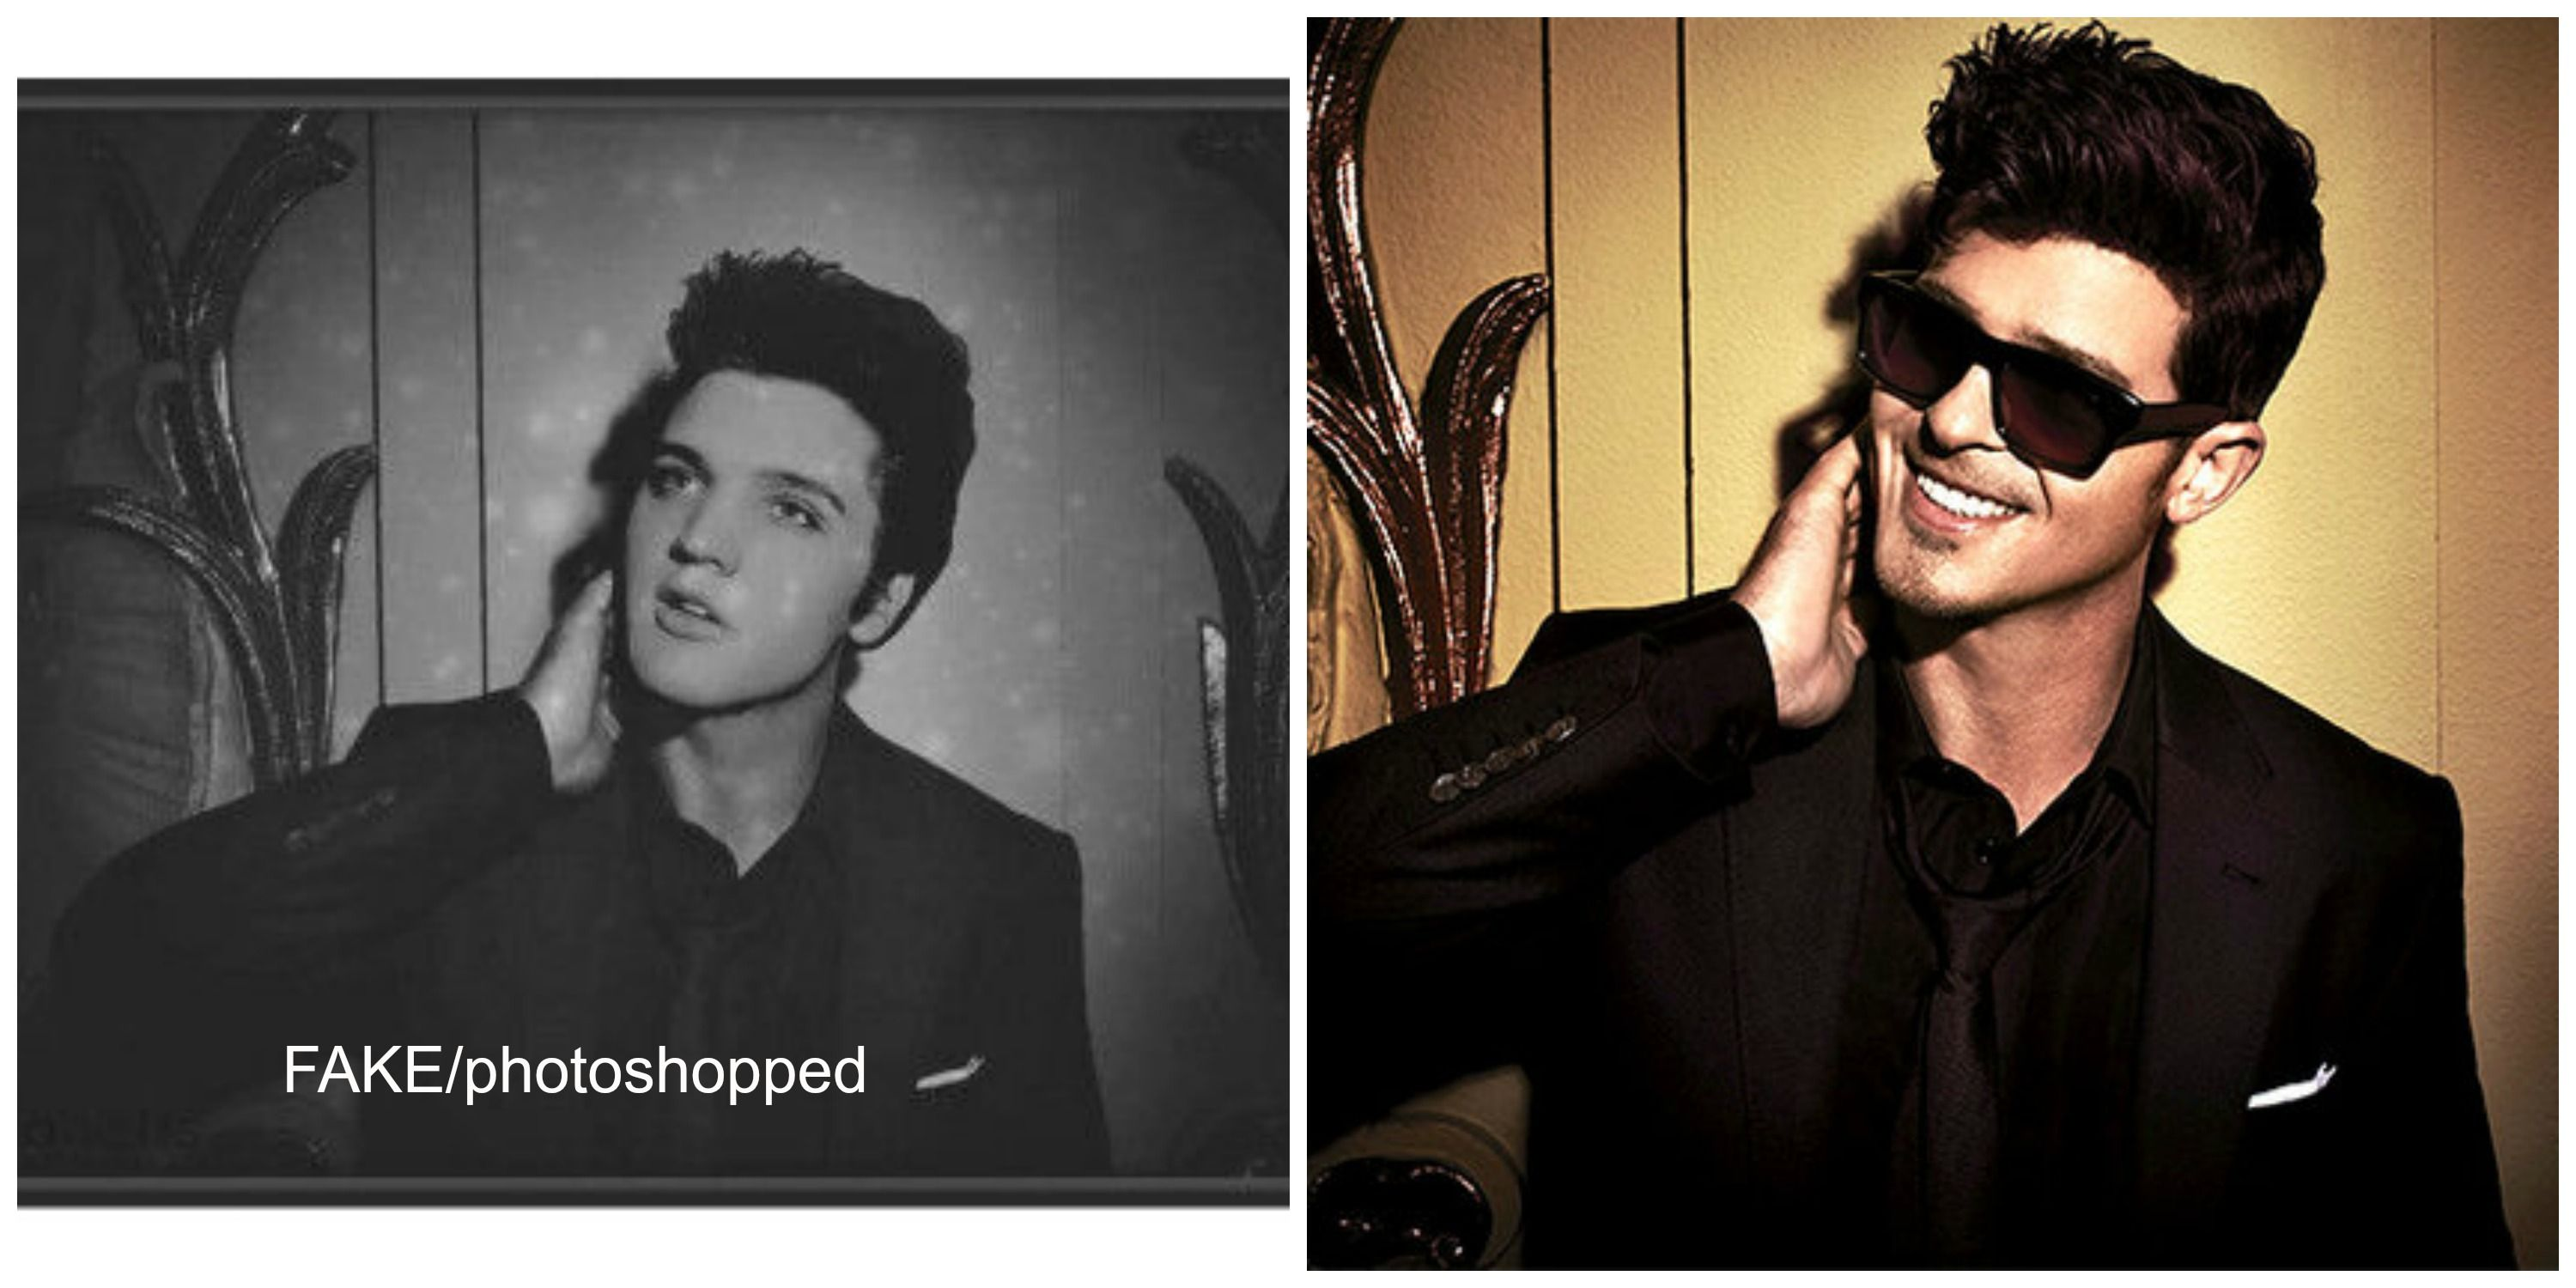 BW photo shown left is FAKE! Elvis' head has been